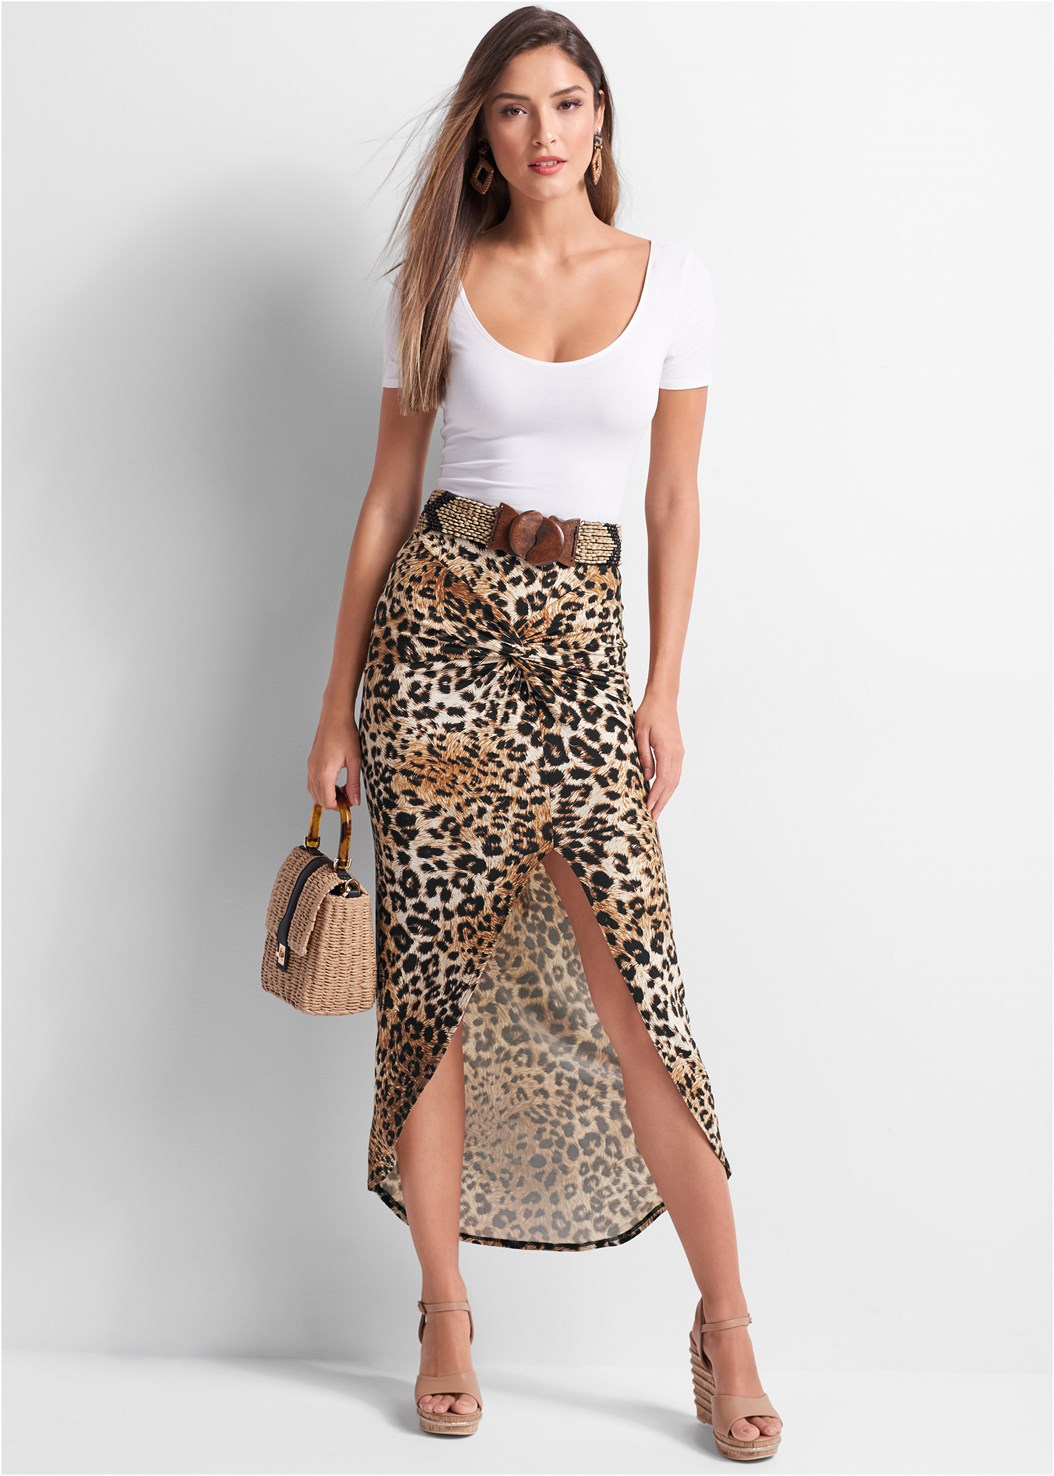 Leopard Print Maxi Skirt,Push Up Bra Buy 2 For $40